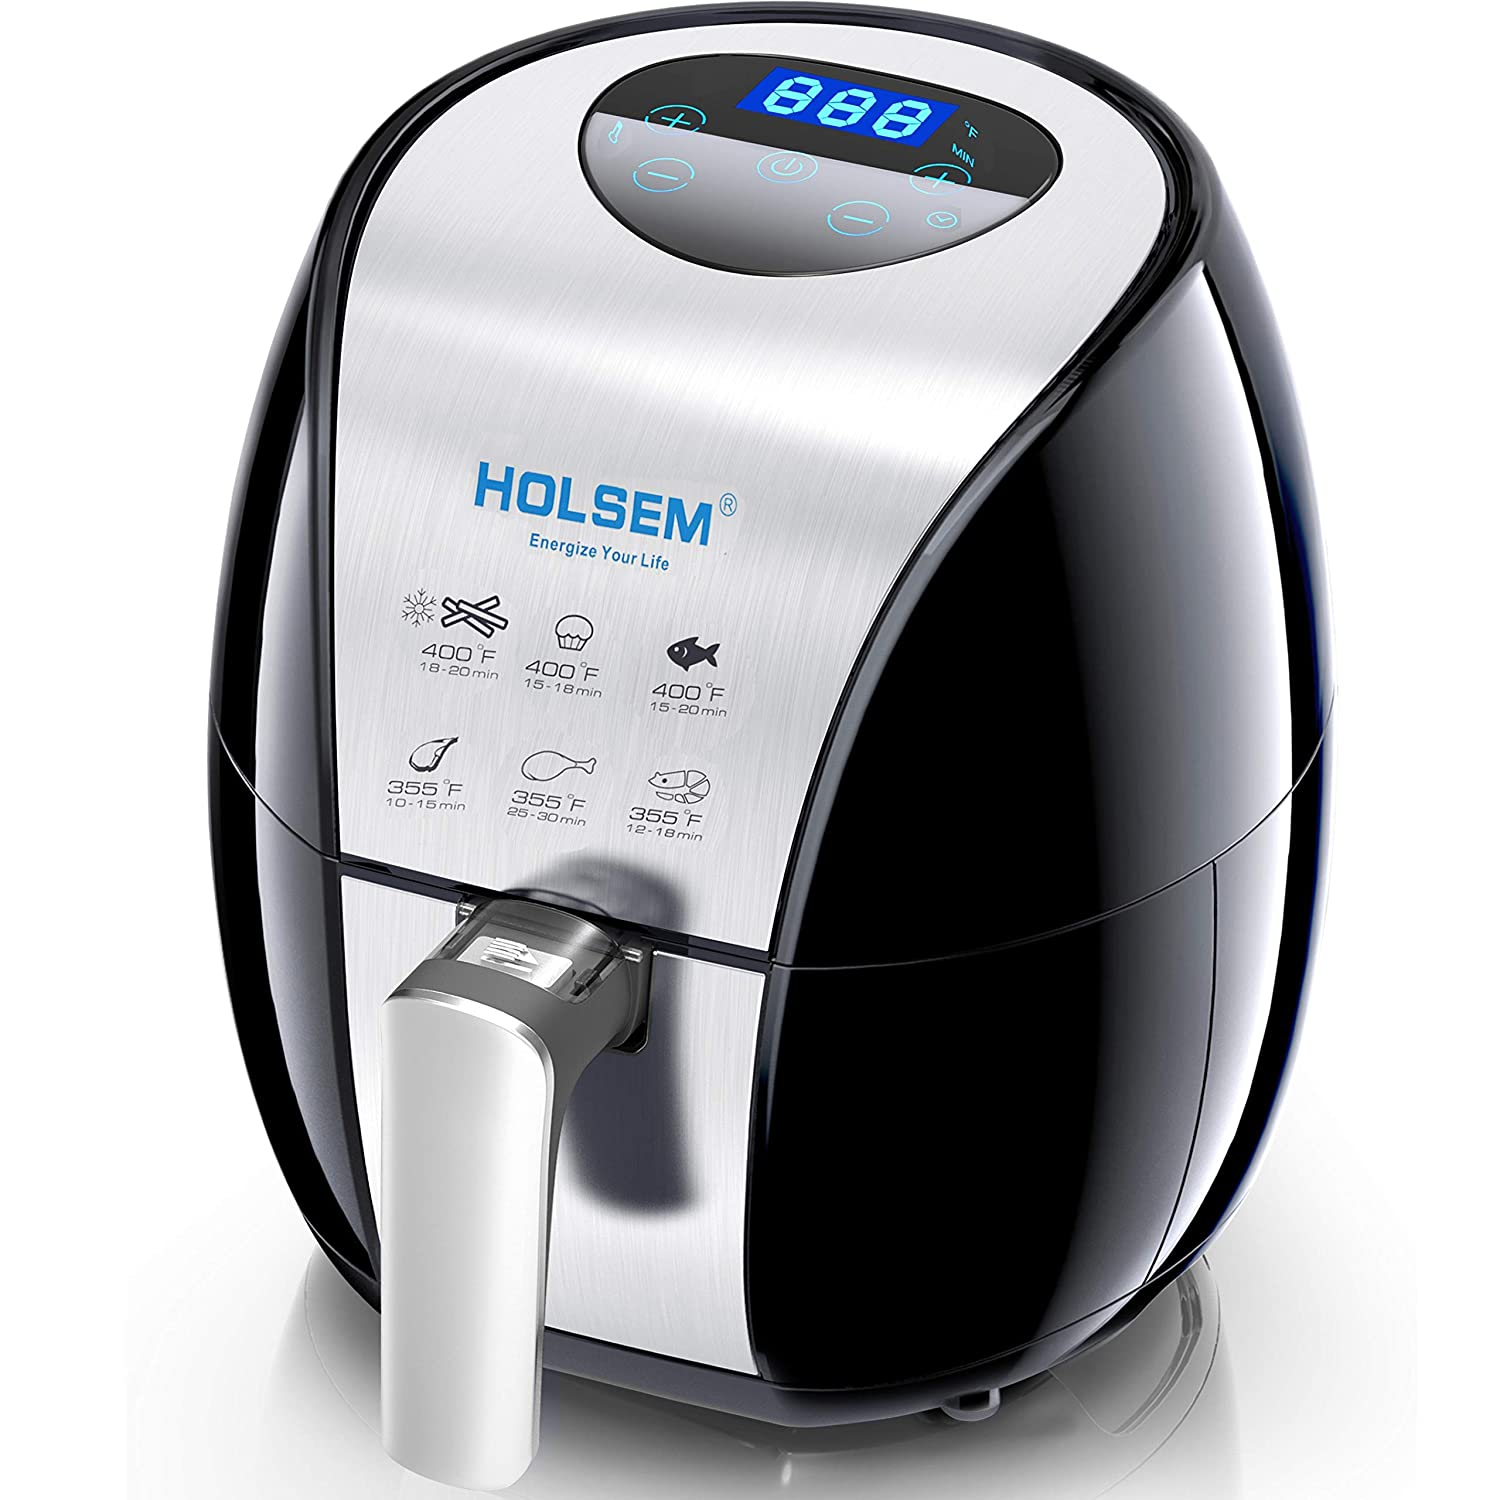 HOLSEM Digital Air Fryer with Rapid Air Circulation System, 3.4 QT Capacity with LED Display - Black/Stainless Steel (Renewed)